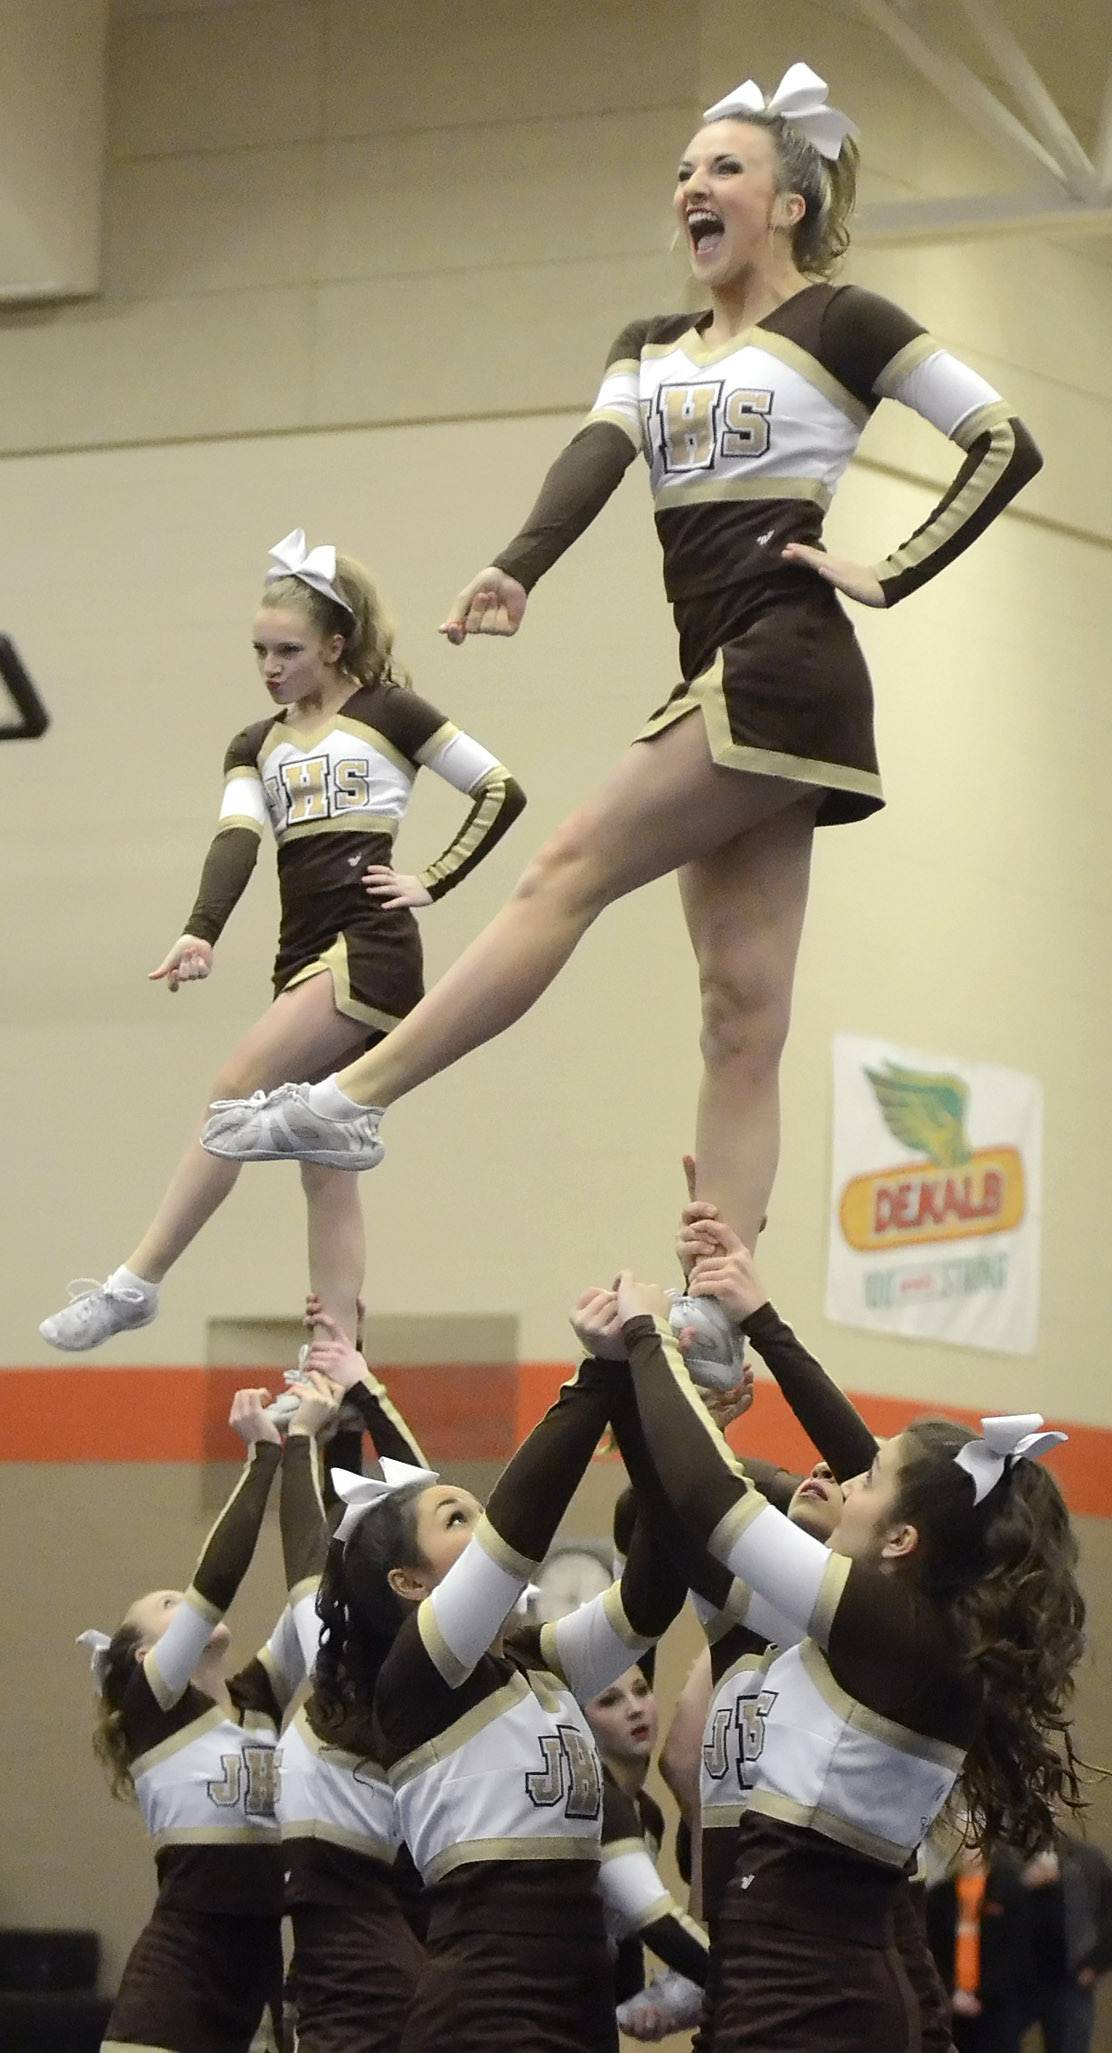 Jacobs High School cheerleaders perform at the DeKalb Sectional earlier this year. A controversy has been brewing over Community Unit District 300's enforcement of its dress code cracking down on students wearing cheerleading uniforms to class on game days.